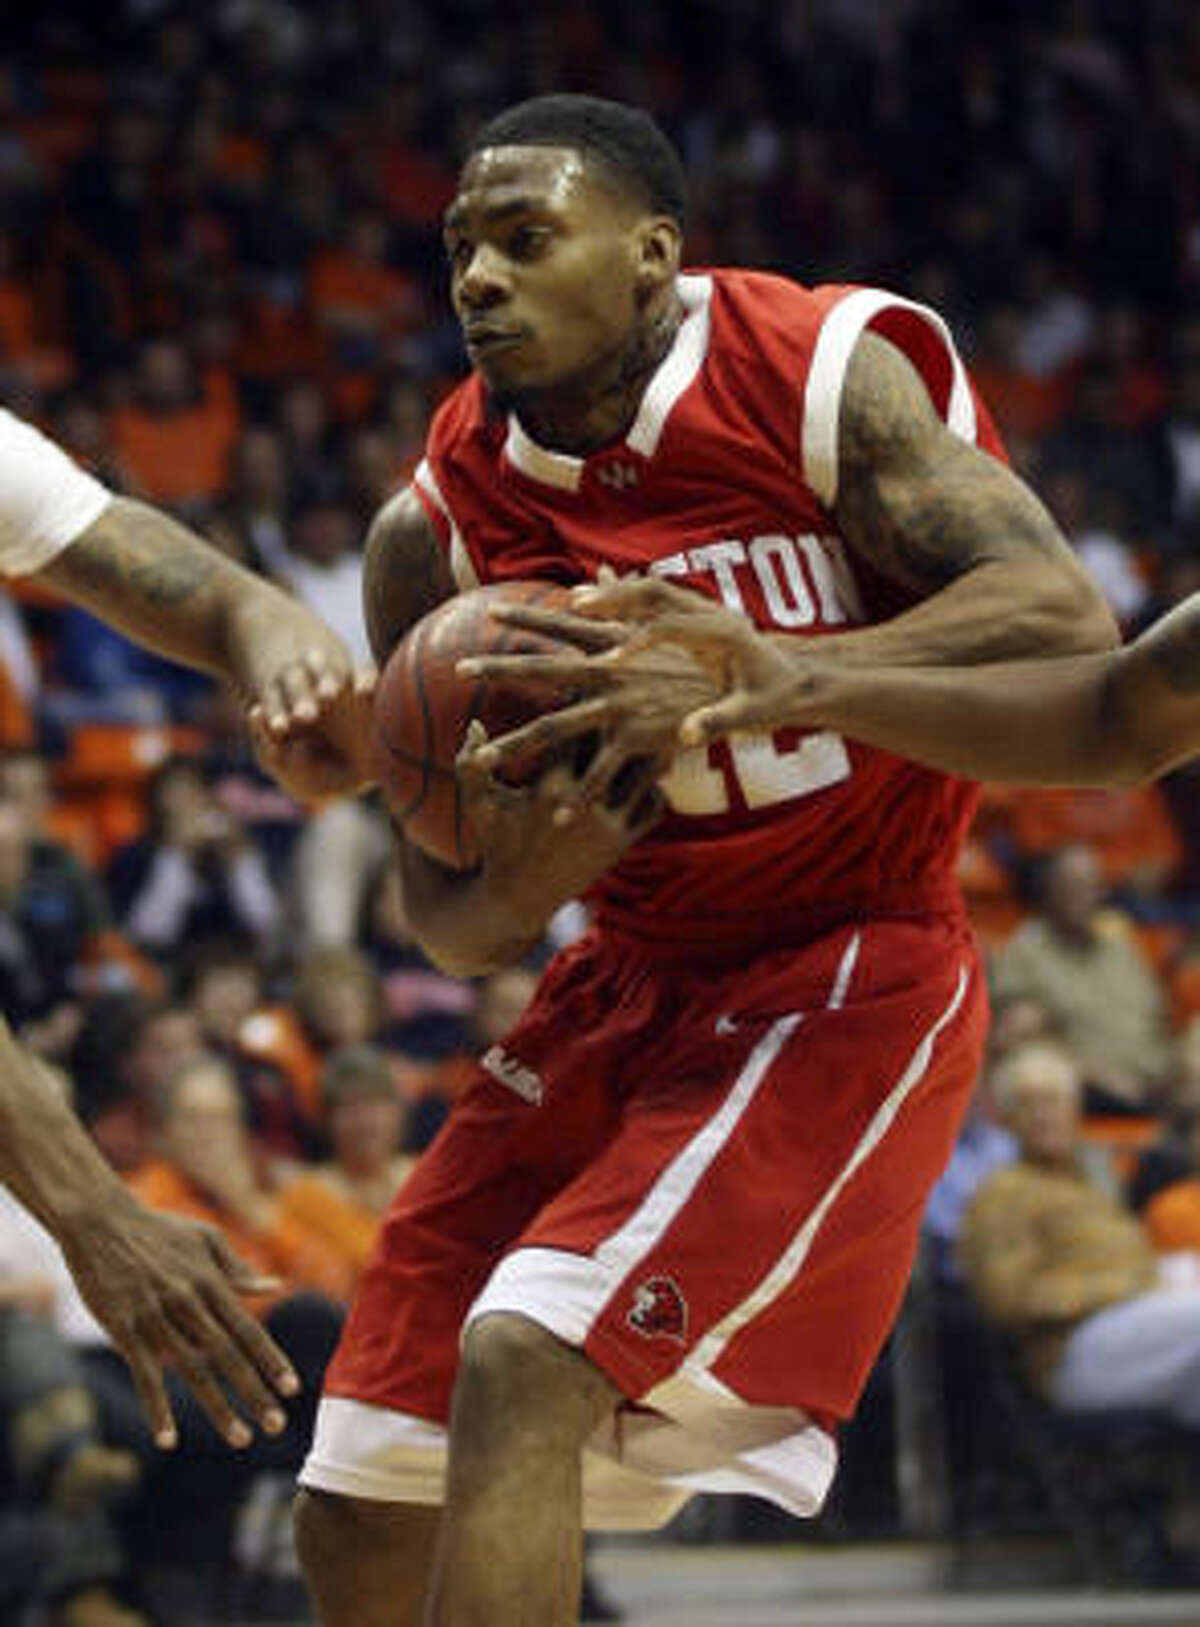 Houston guard Aubrey Coleman averages 18.4 points for the Cougars but has attempted only six 3-pointers all season.